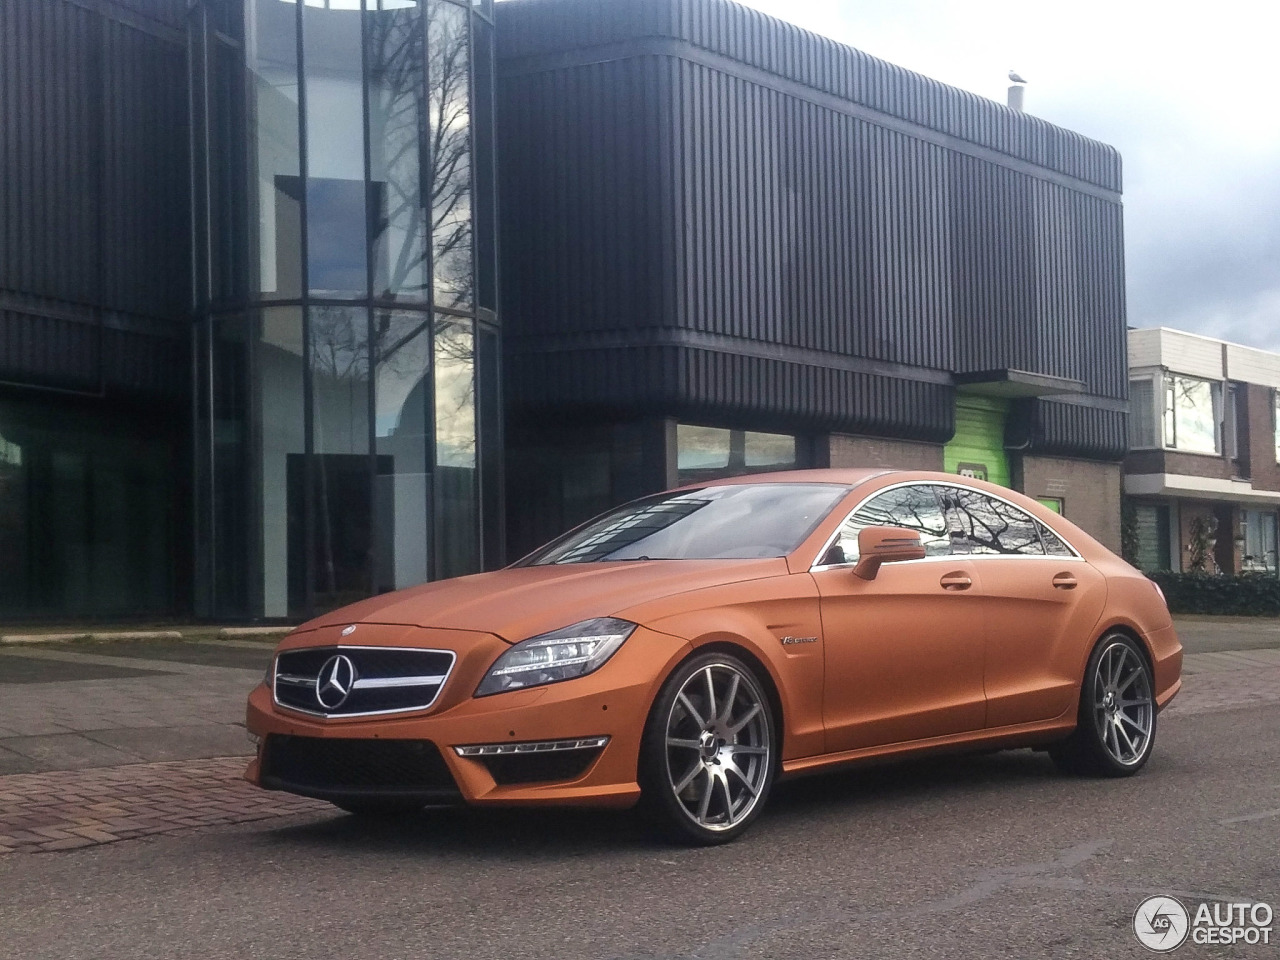 Mercedes benz cls 63 amg c218 15 february 2016 autogespot for Mercedes benz cls 63 amg price